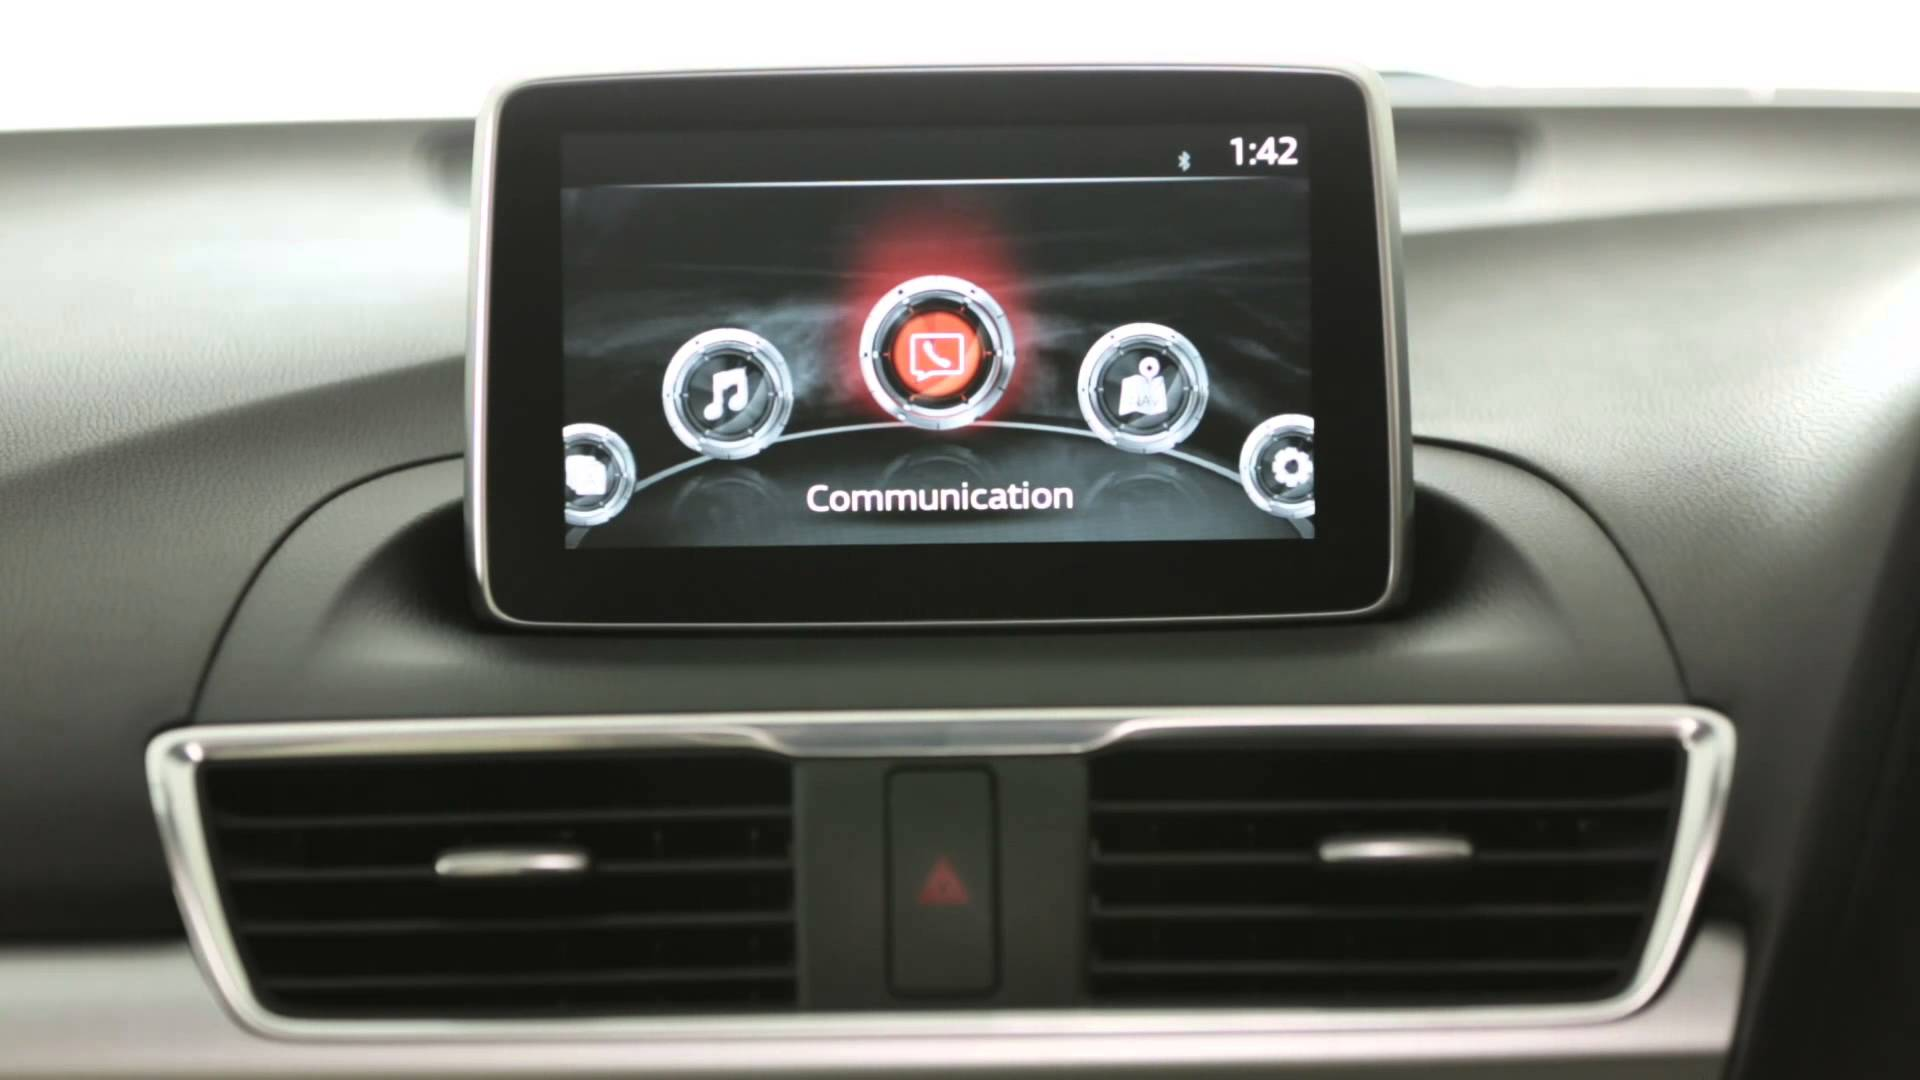 Mazda Mzd Connect Apps >> How to soft reset the Mazda Connect infotainment system | Visser I/O